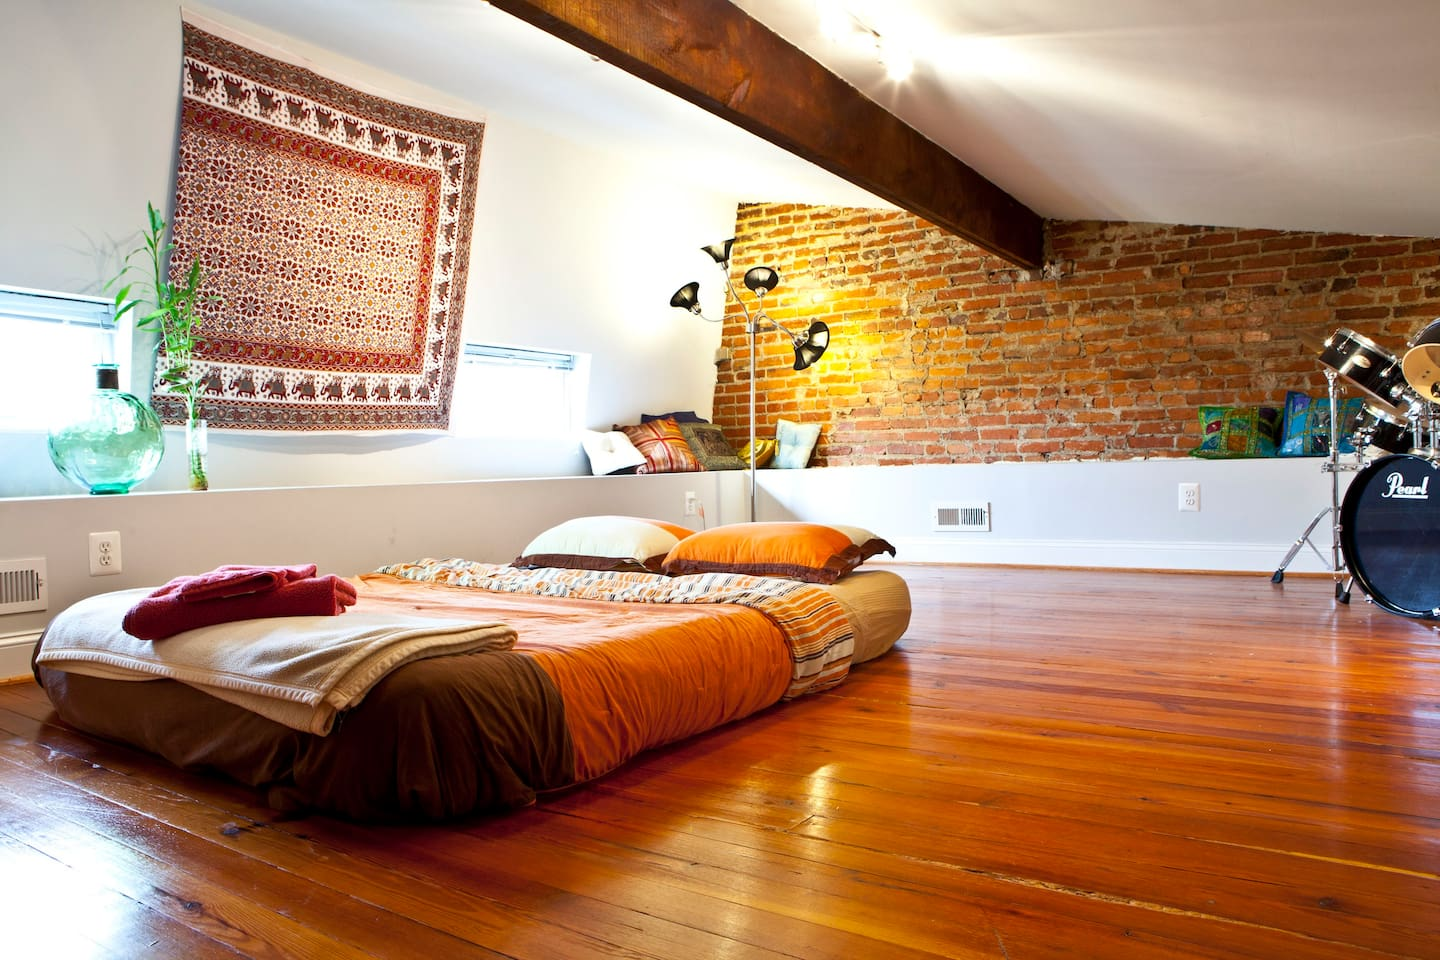 While not pictured, the loft now features a brand new full size bed. Relax in luxury with bamboo sheets and towels.